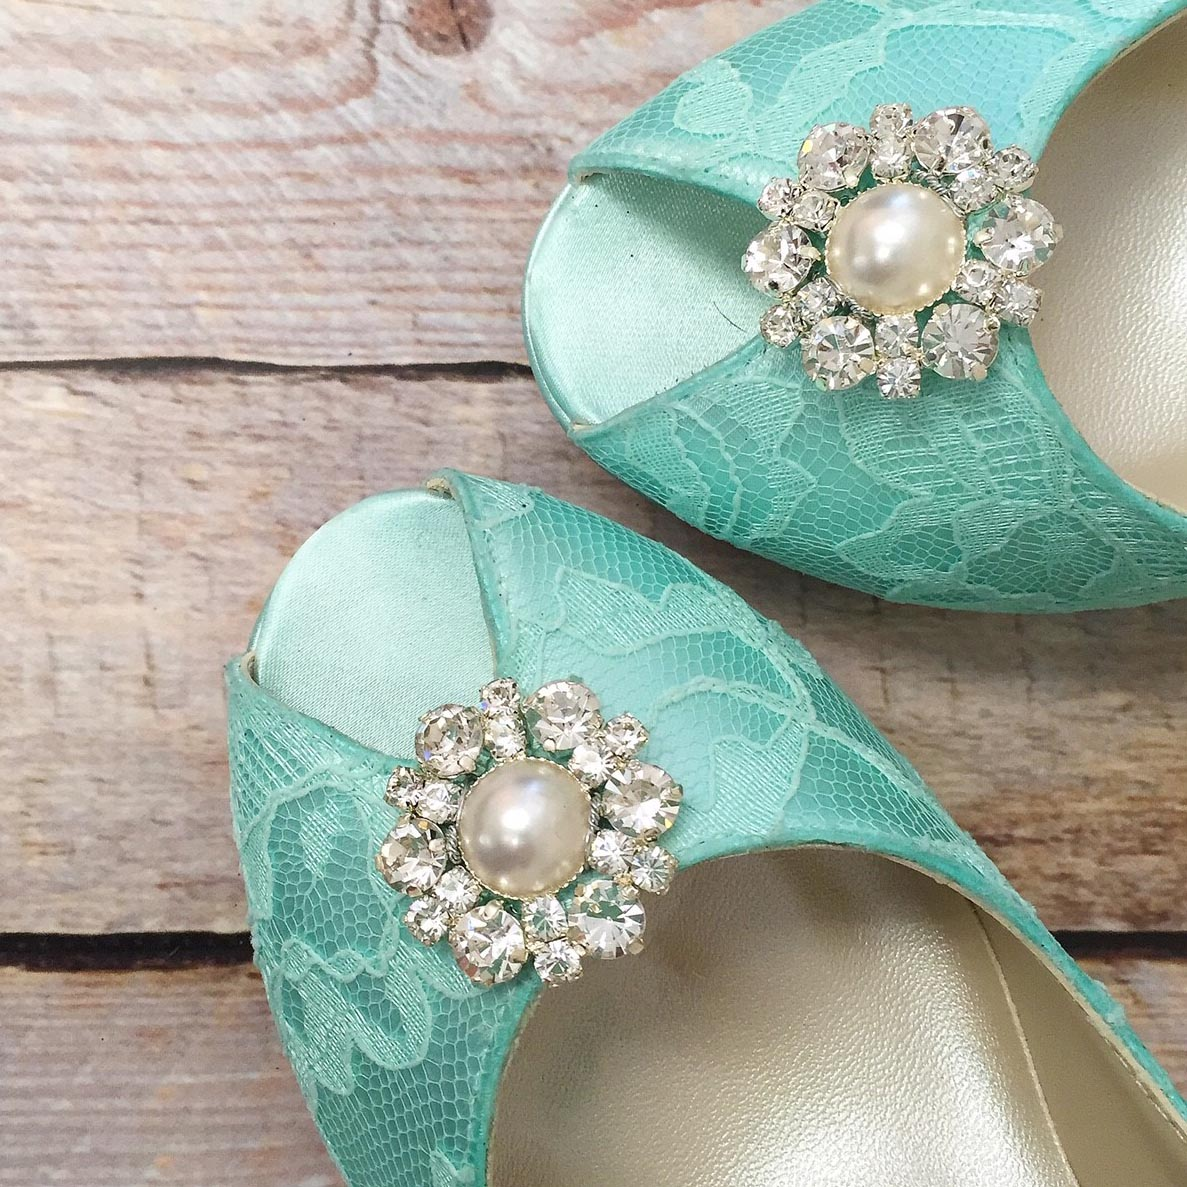 Aqua Blue Lace Wedding Shoes with Sparkly Pearl and Silver Crystal Brooch Comfortable Custom Wedding Shoes by Ellie Wren